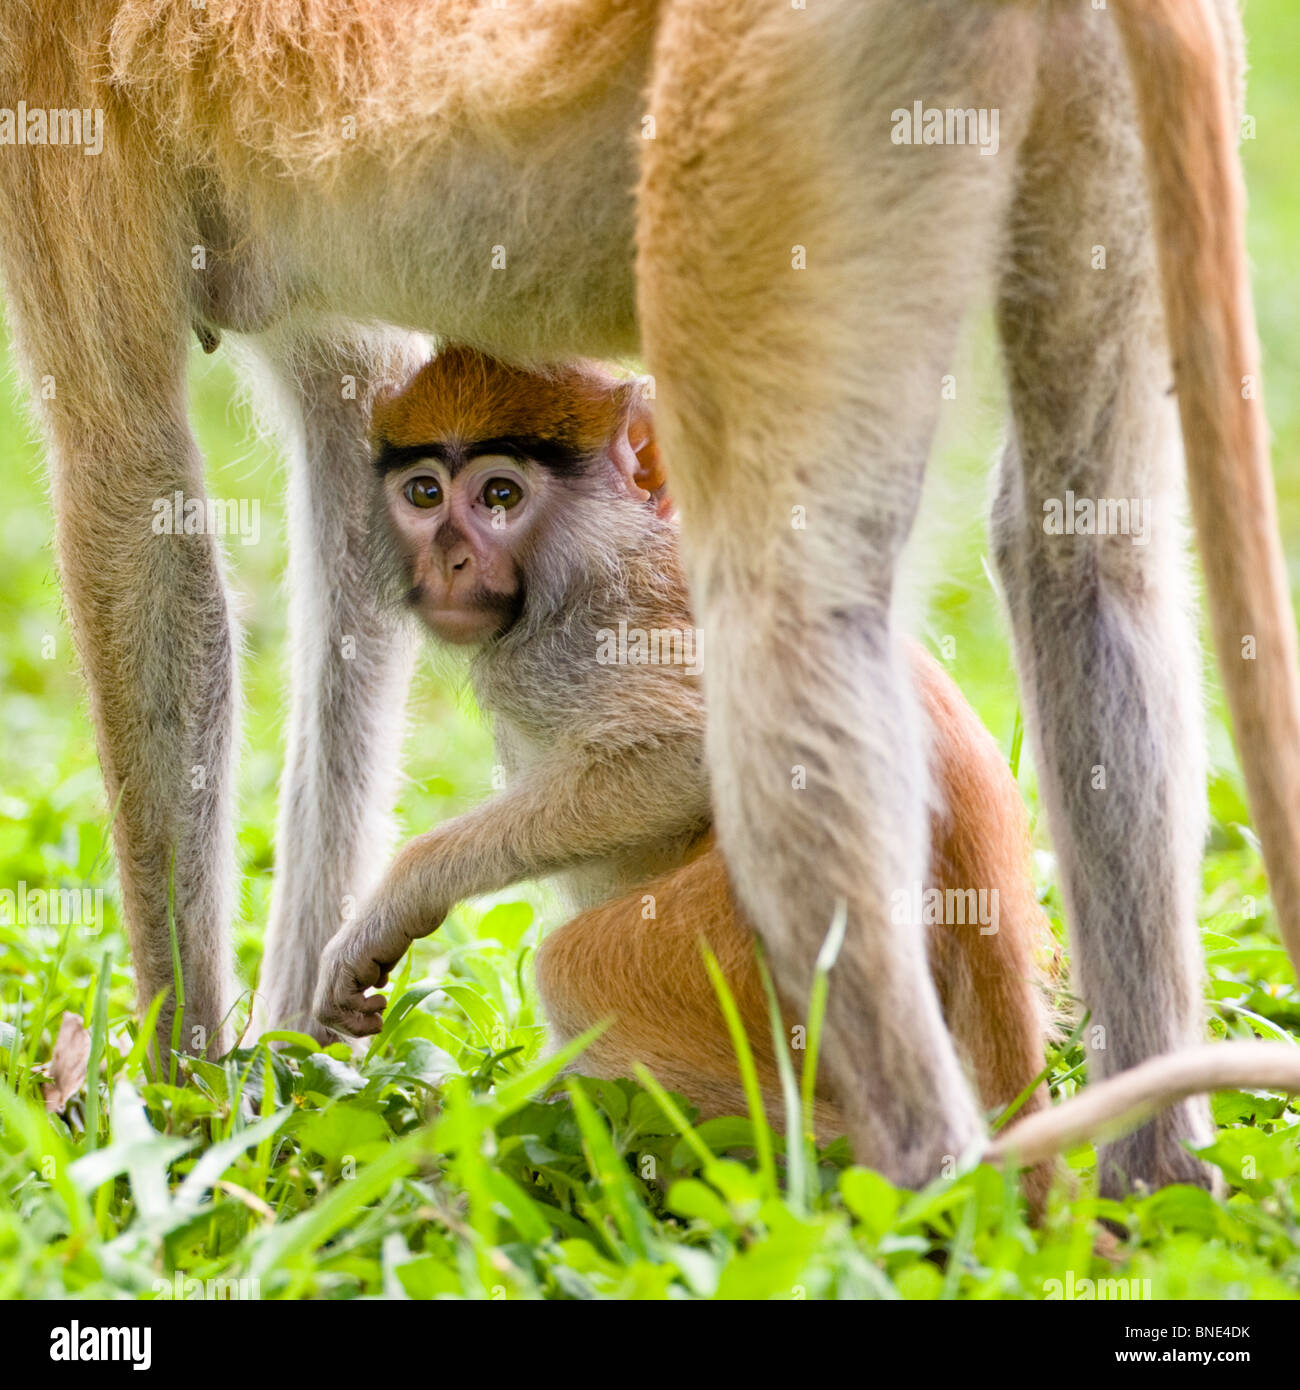 Patas Monkey, Erythrocebus patas, with young, in Mole National Park, Ghana. - Stock Image